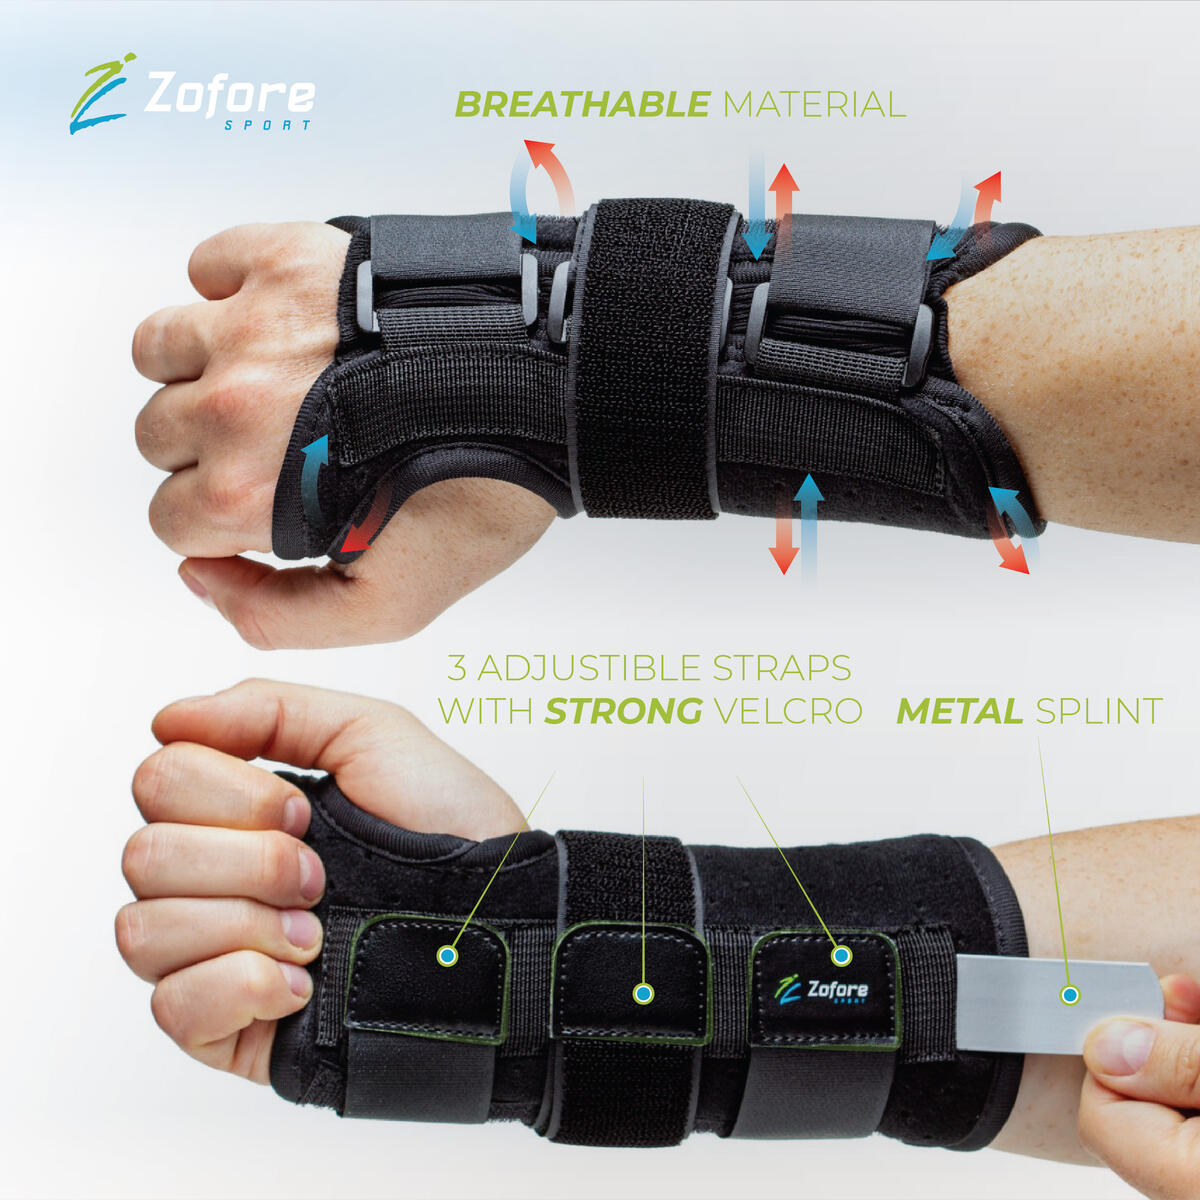 Carpal Tunnel Wrist Brace Support with Metal Splint Stabilizer by Zofore - Helps Relieve Tendinitis Arthritis Carpal Tunnel Pain - Reduces Recovery Time for Men Women